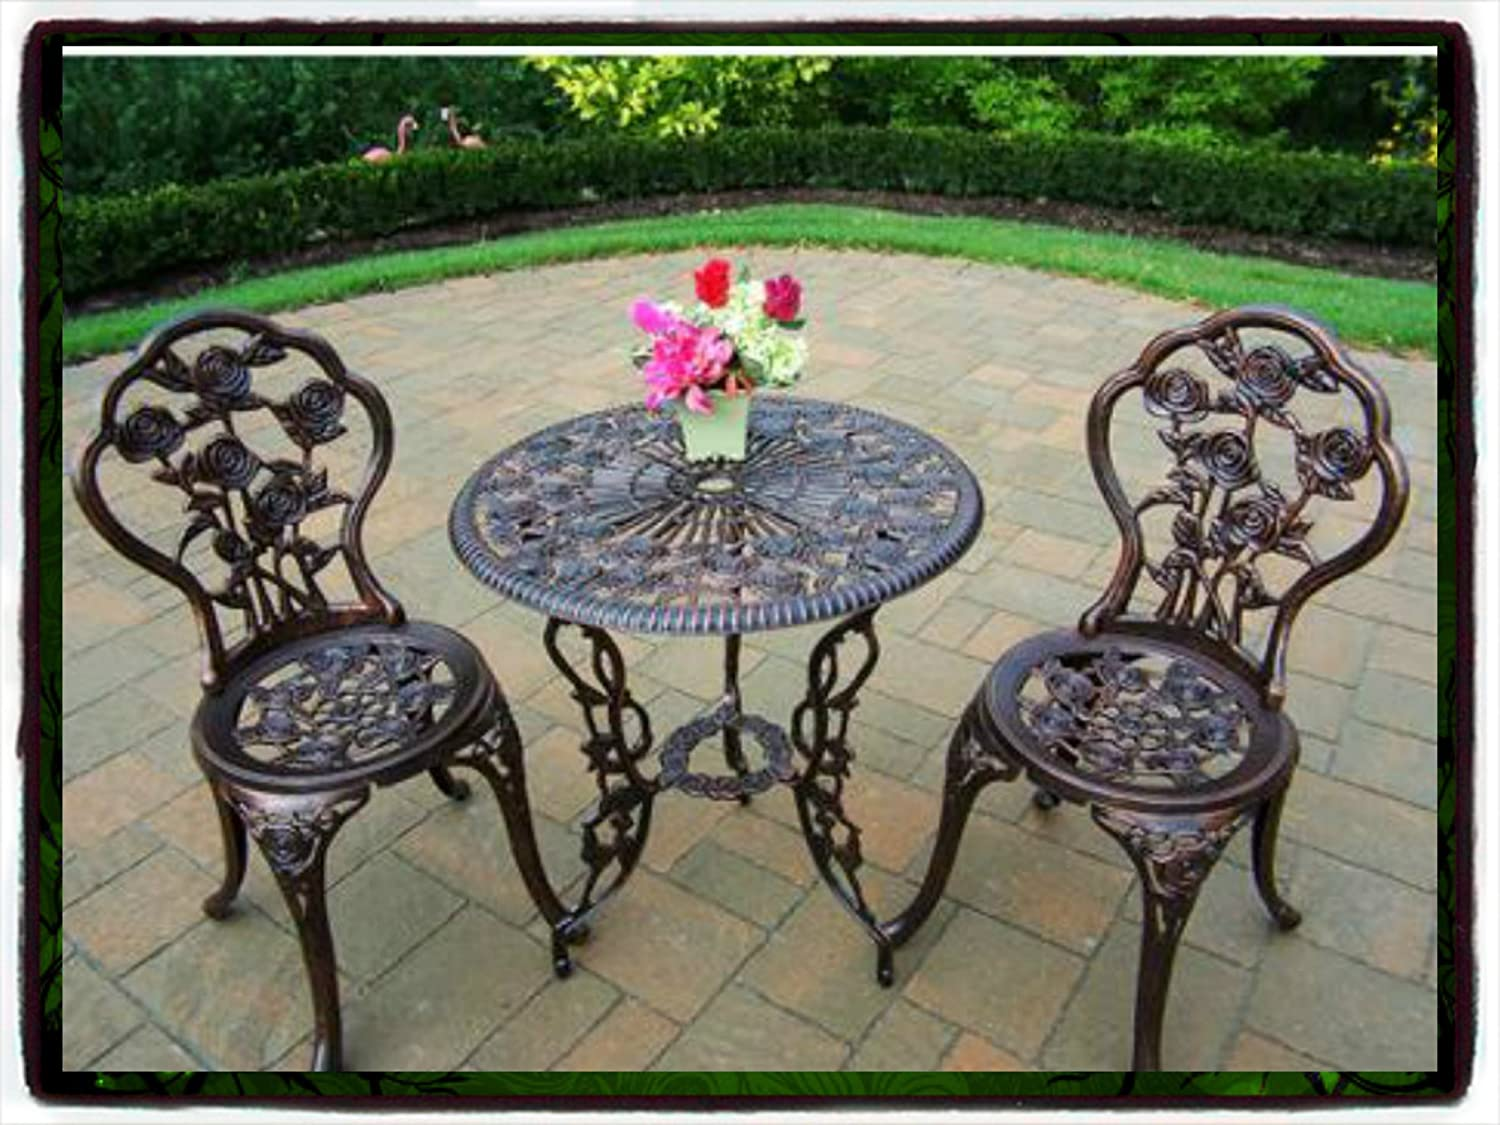 Patio outdoor furniture rose design cast aluminum bistro set antique copper wicker garden piece table dining chairs new chair pool package all weather lawn